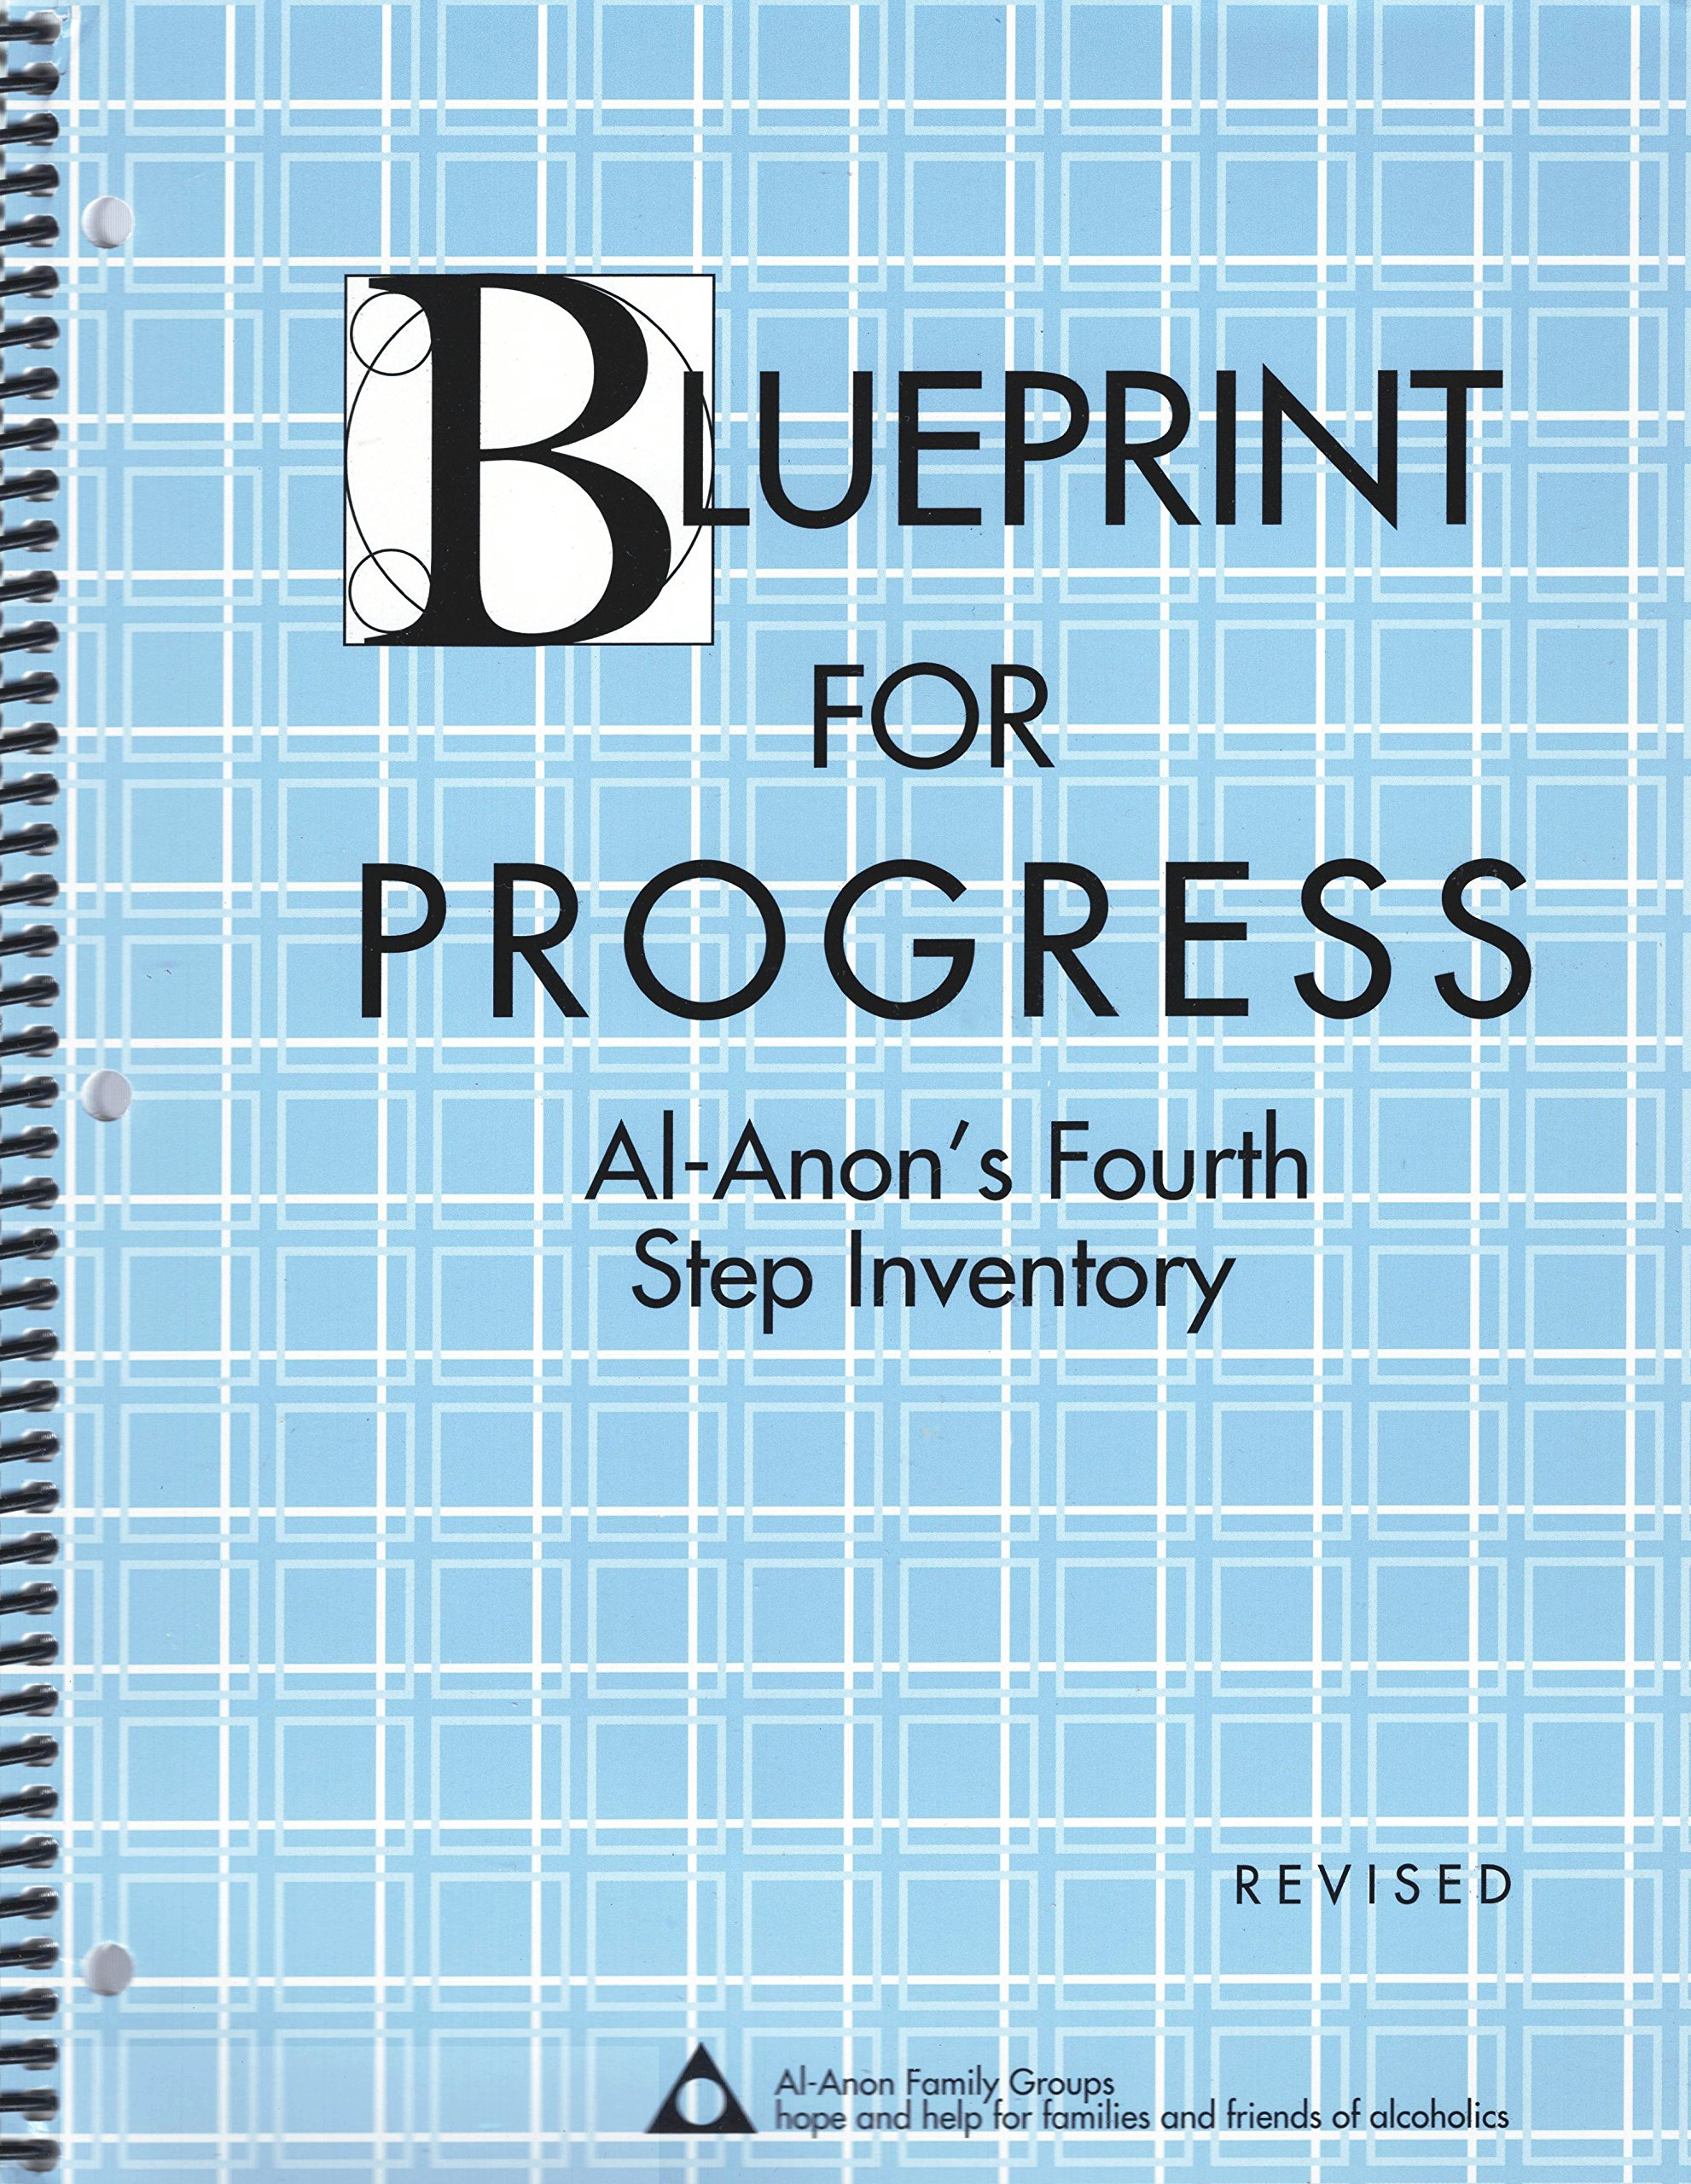 Worksheets Al Anon 12 Steps Worksheets blueprint for progress al anons fourth step inventory amazon co uk 9780910034425 books